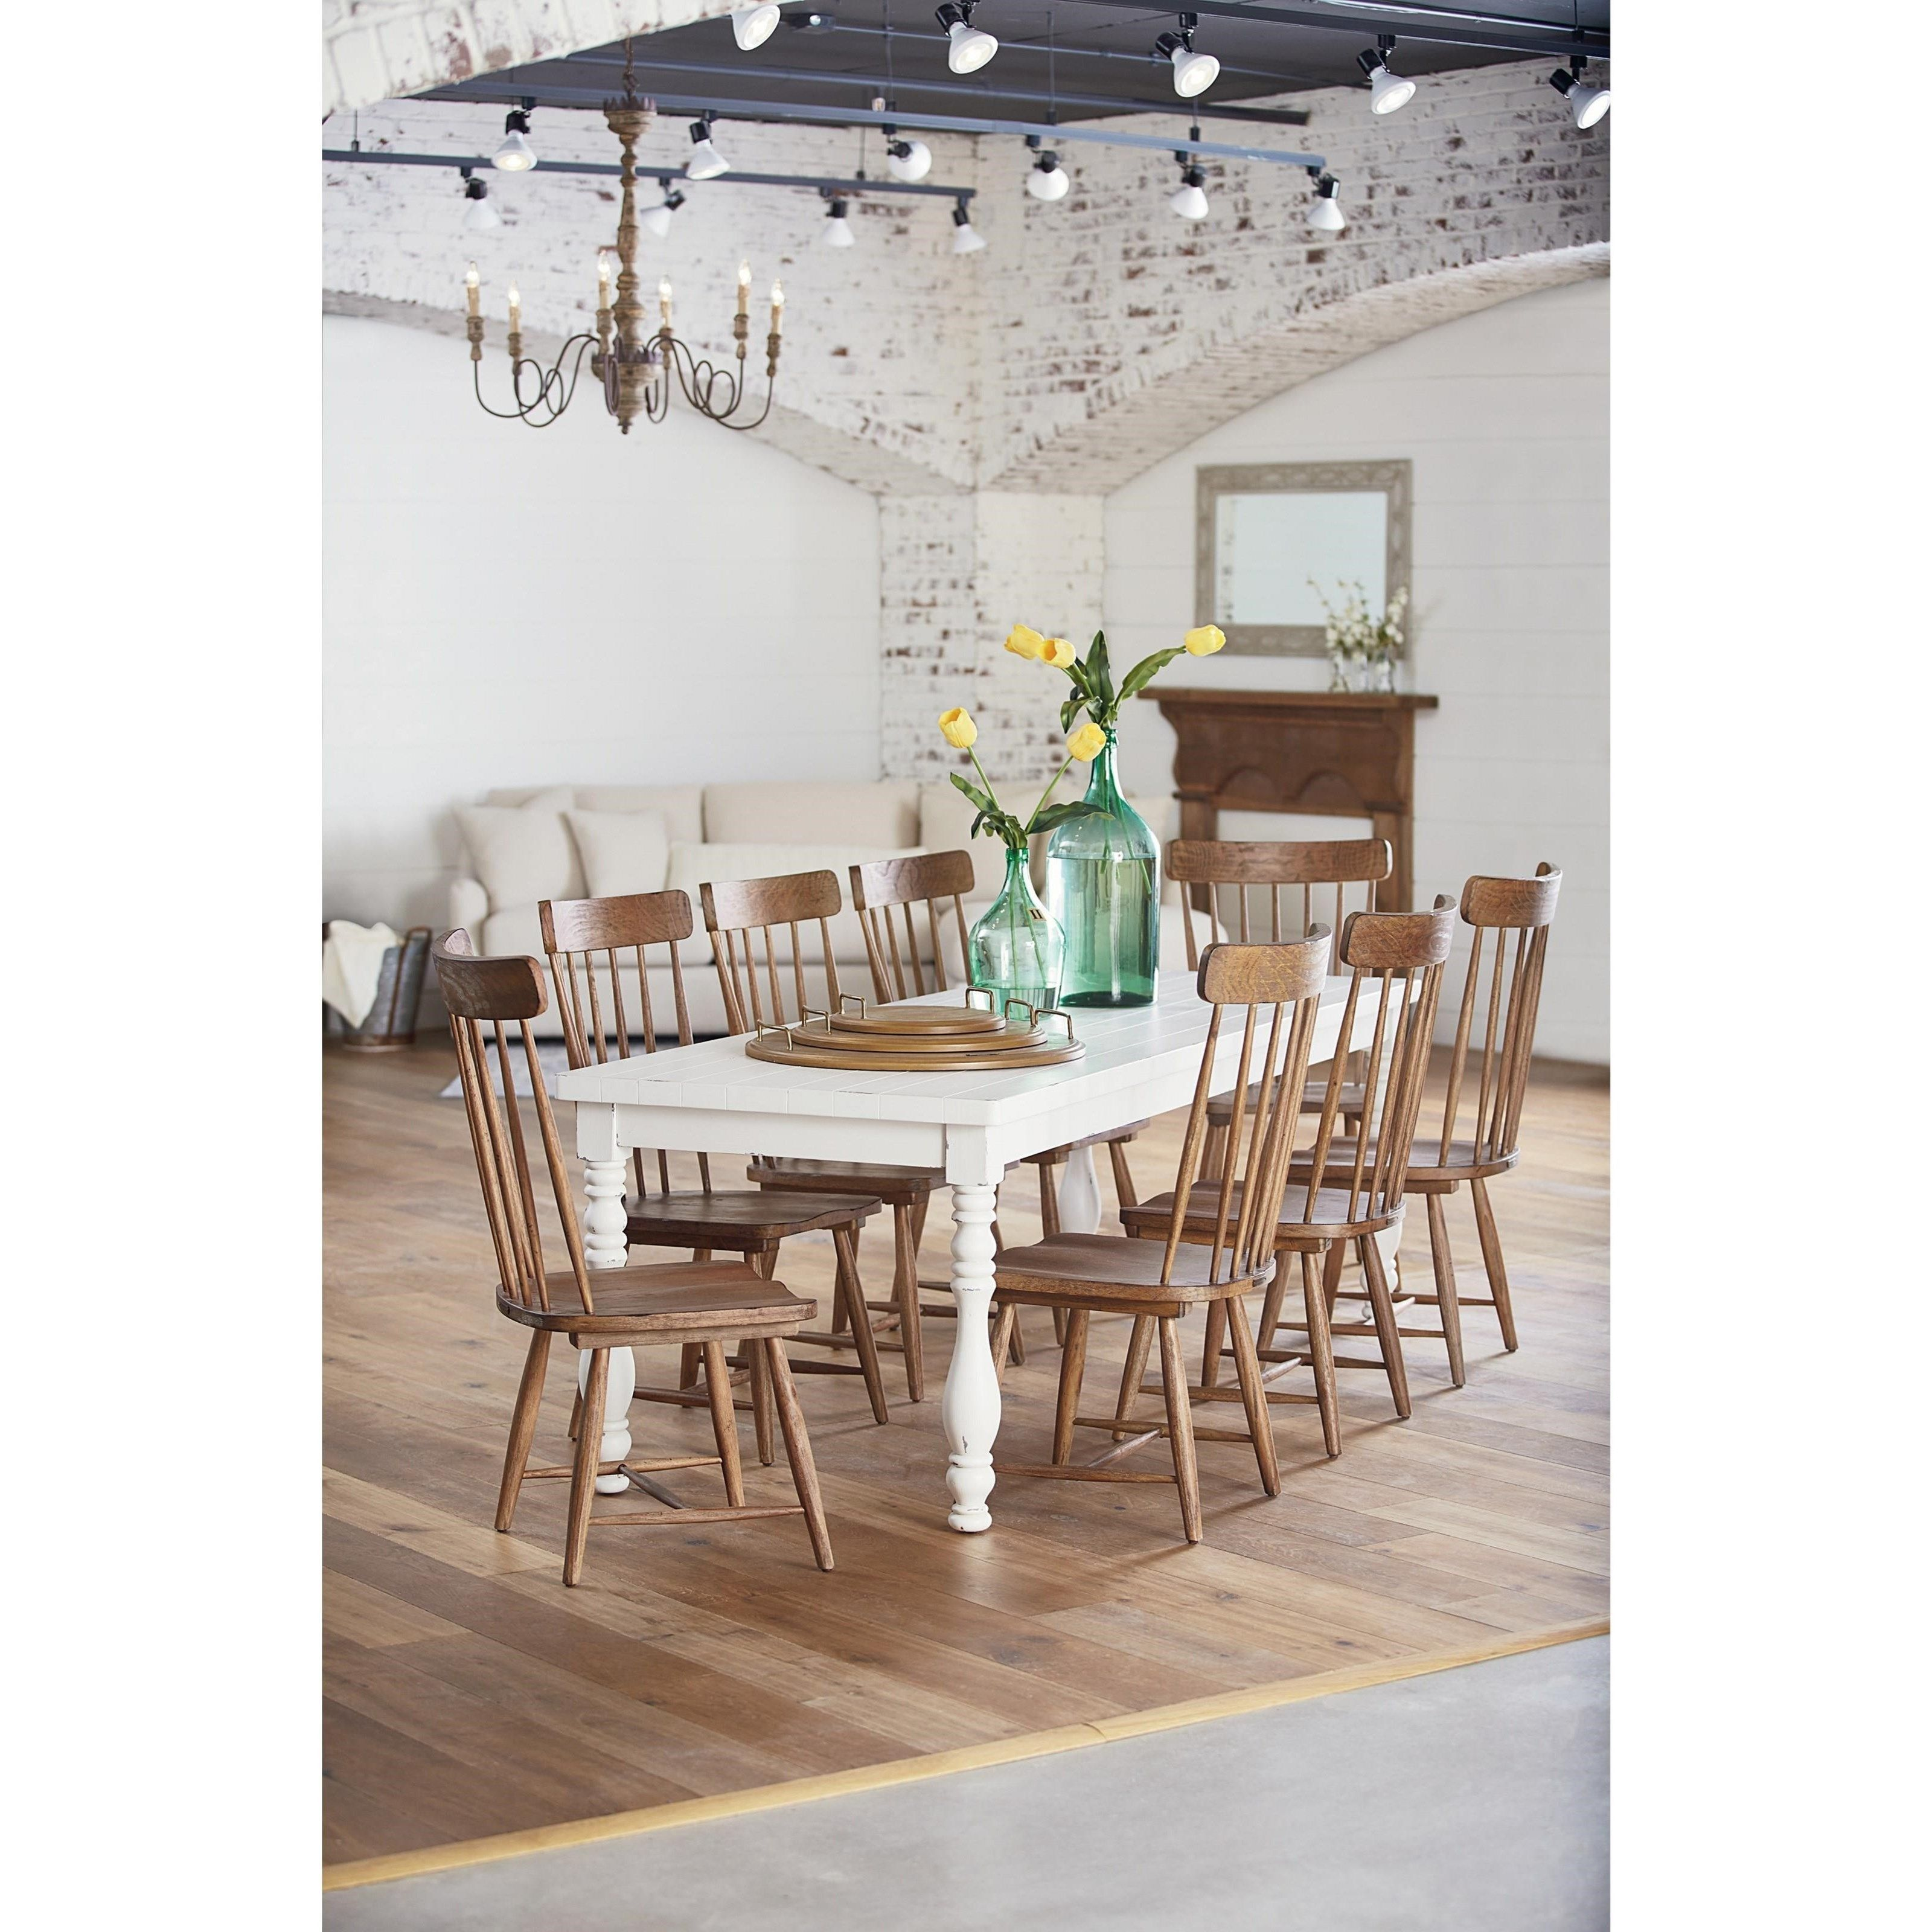 A great dining table has always been the center of family life and our Farmhouse\u2026